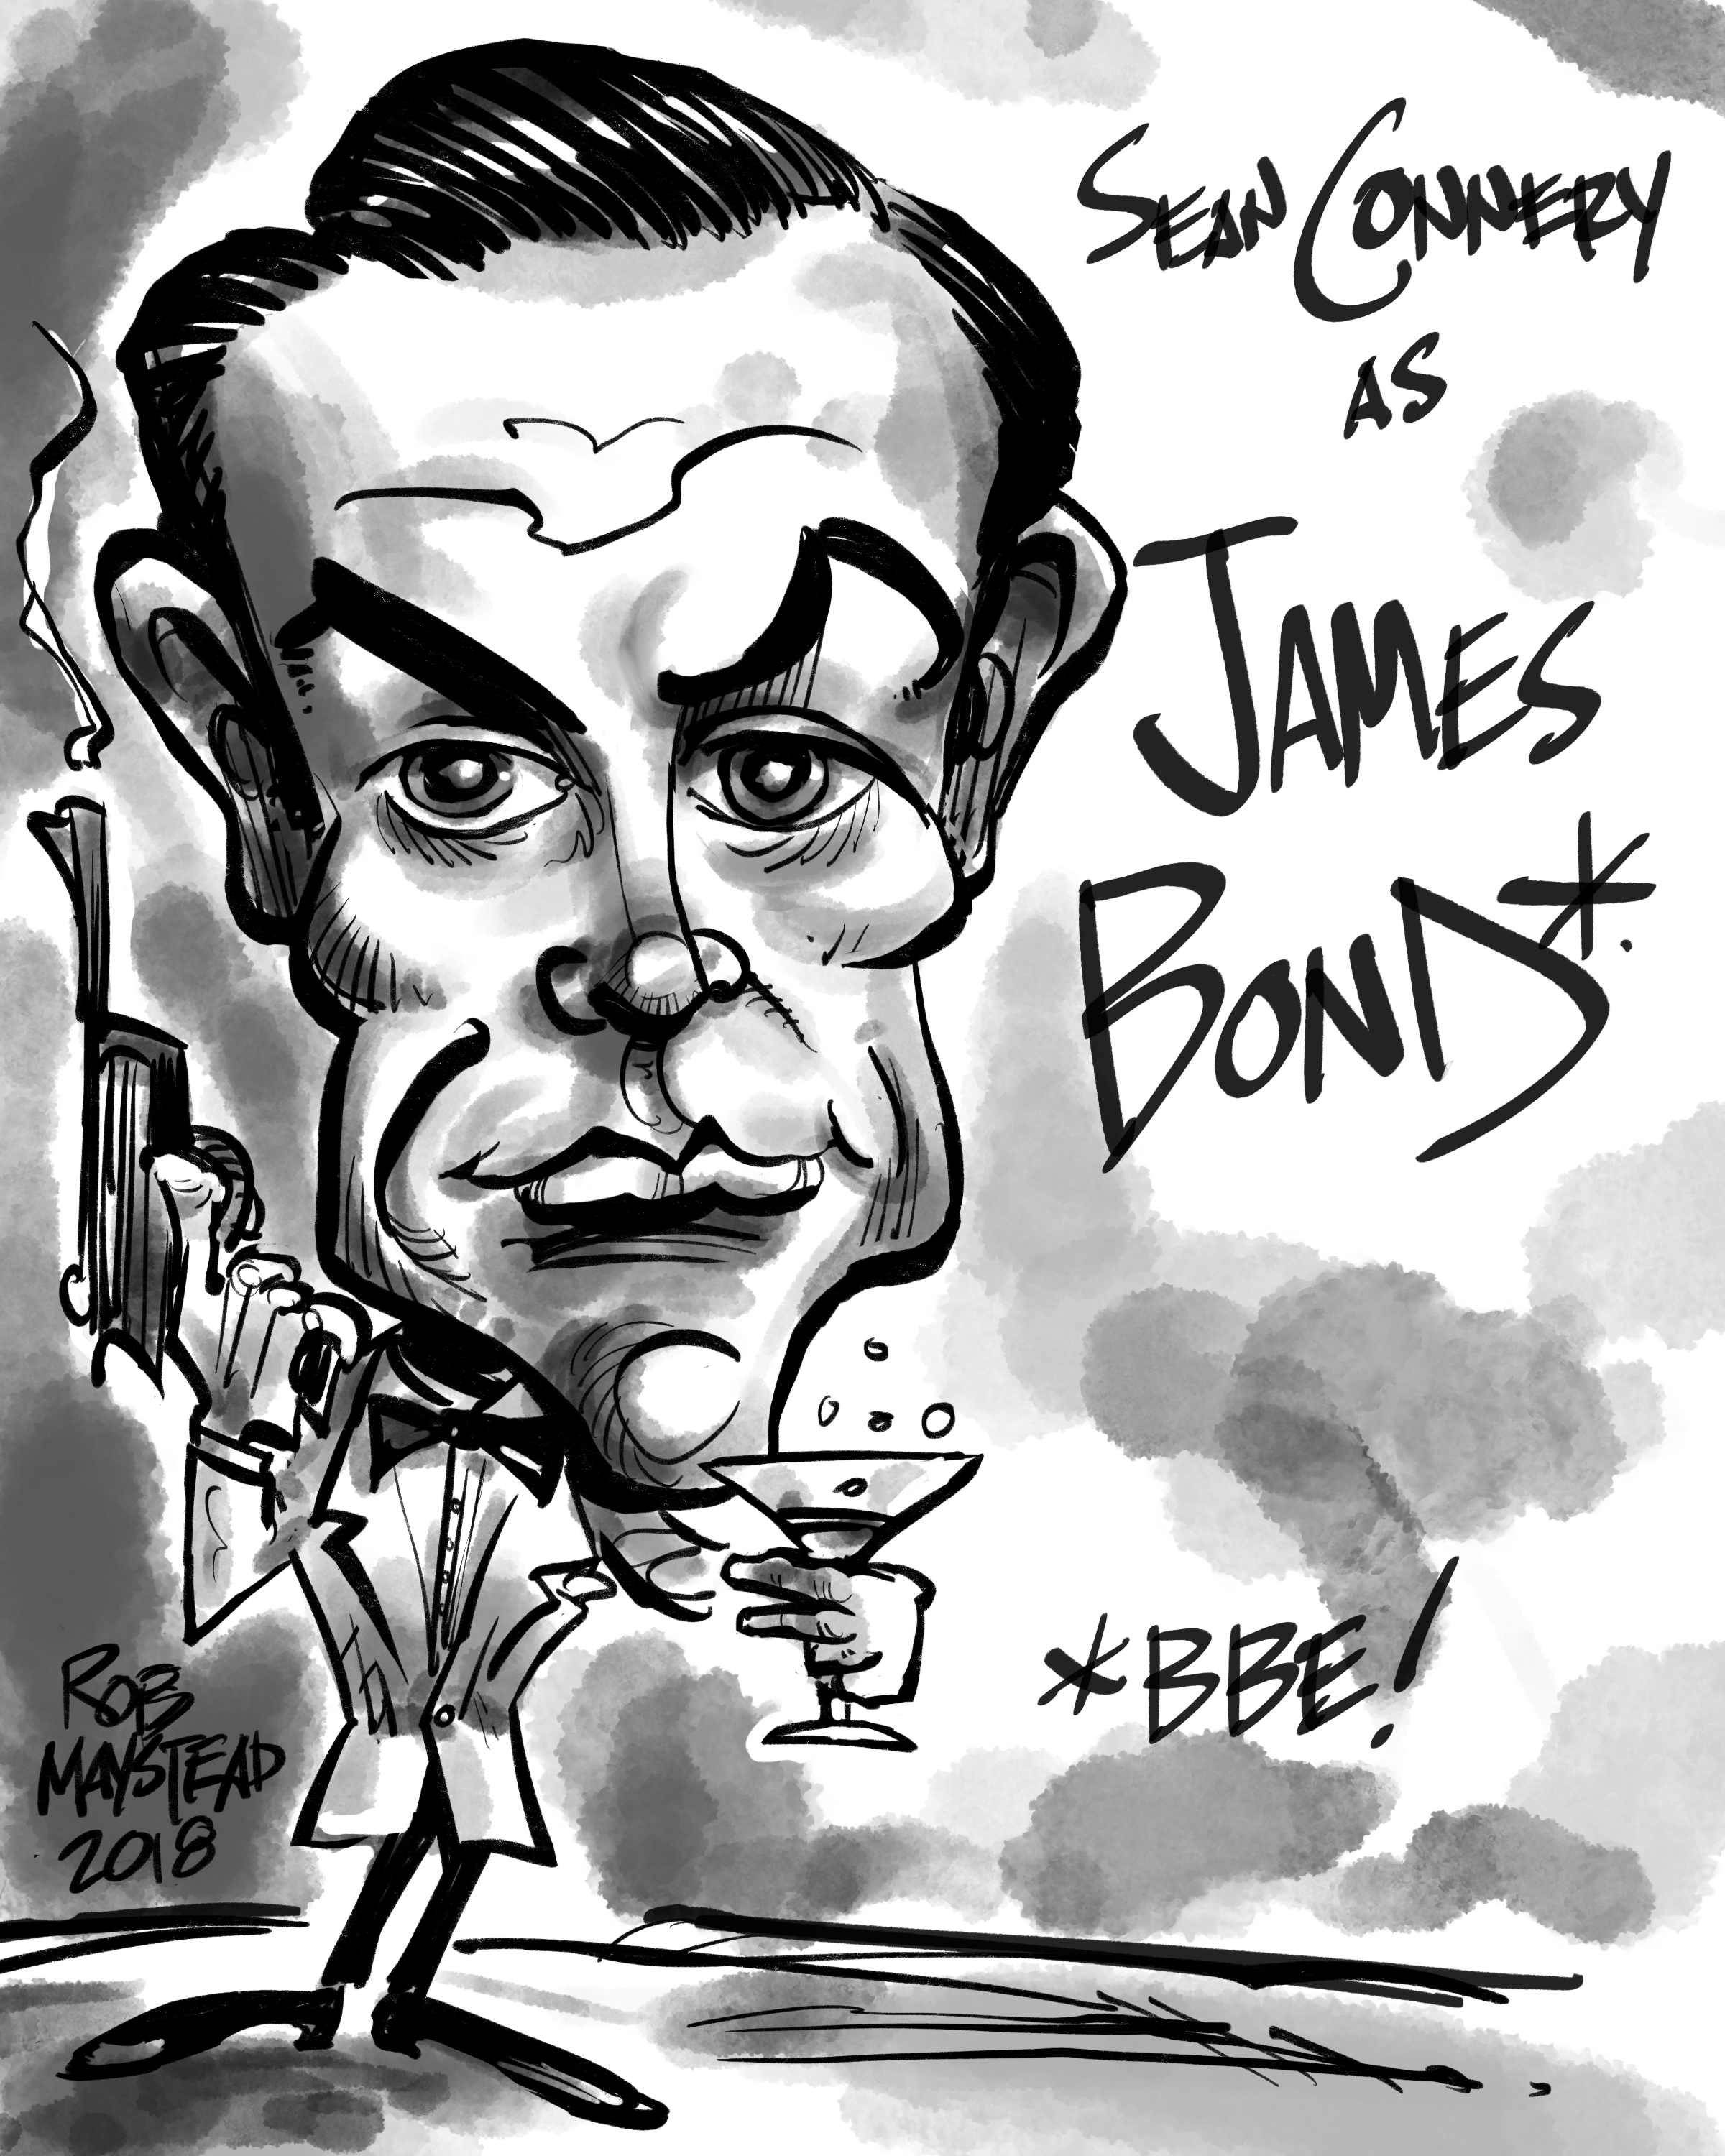 Sean Connery As James Bond Celebrity Drawings Caricature